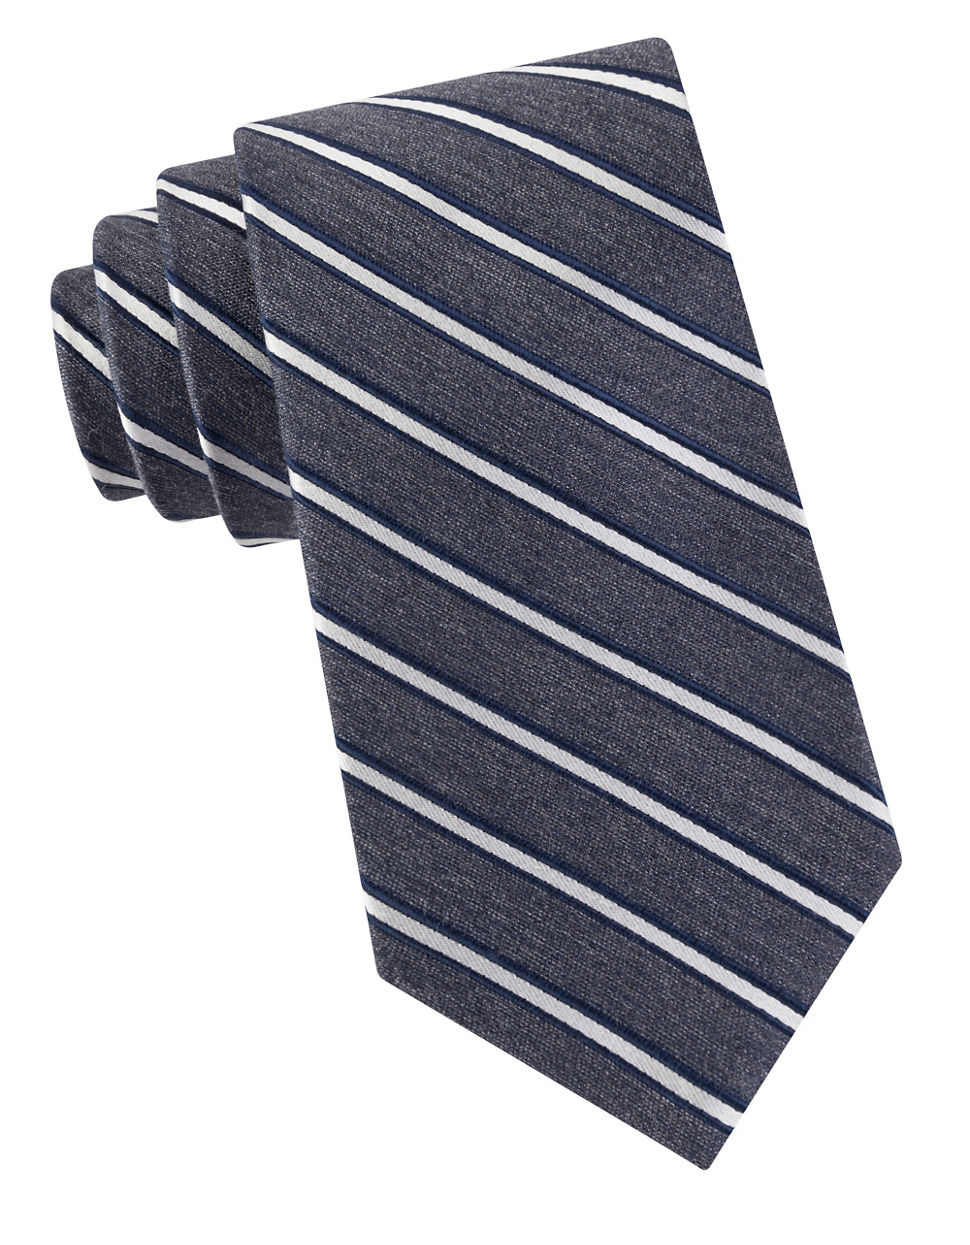 Black amp brown striped tie in blue for men gray save 52 lyst